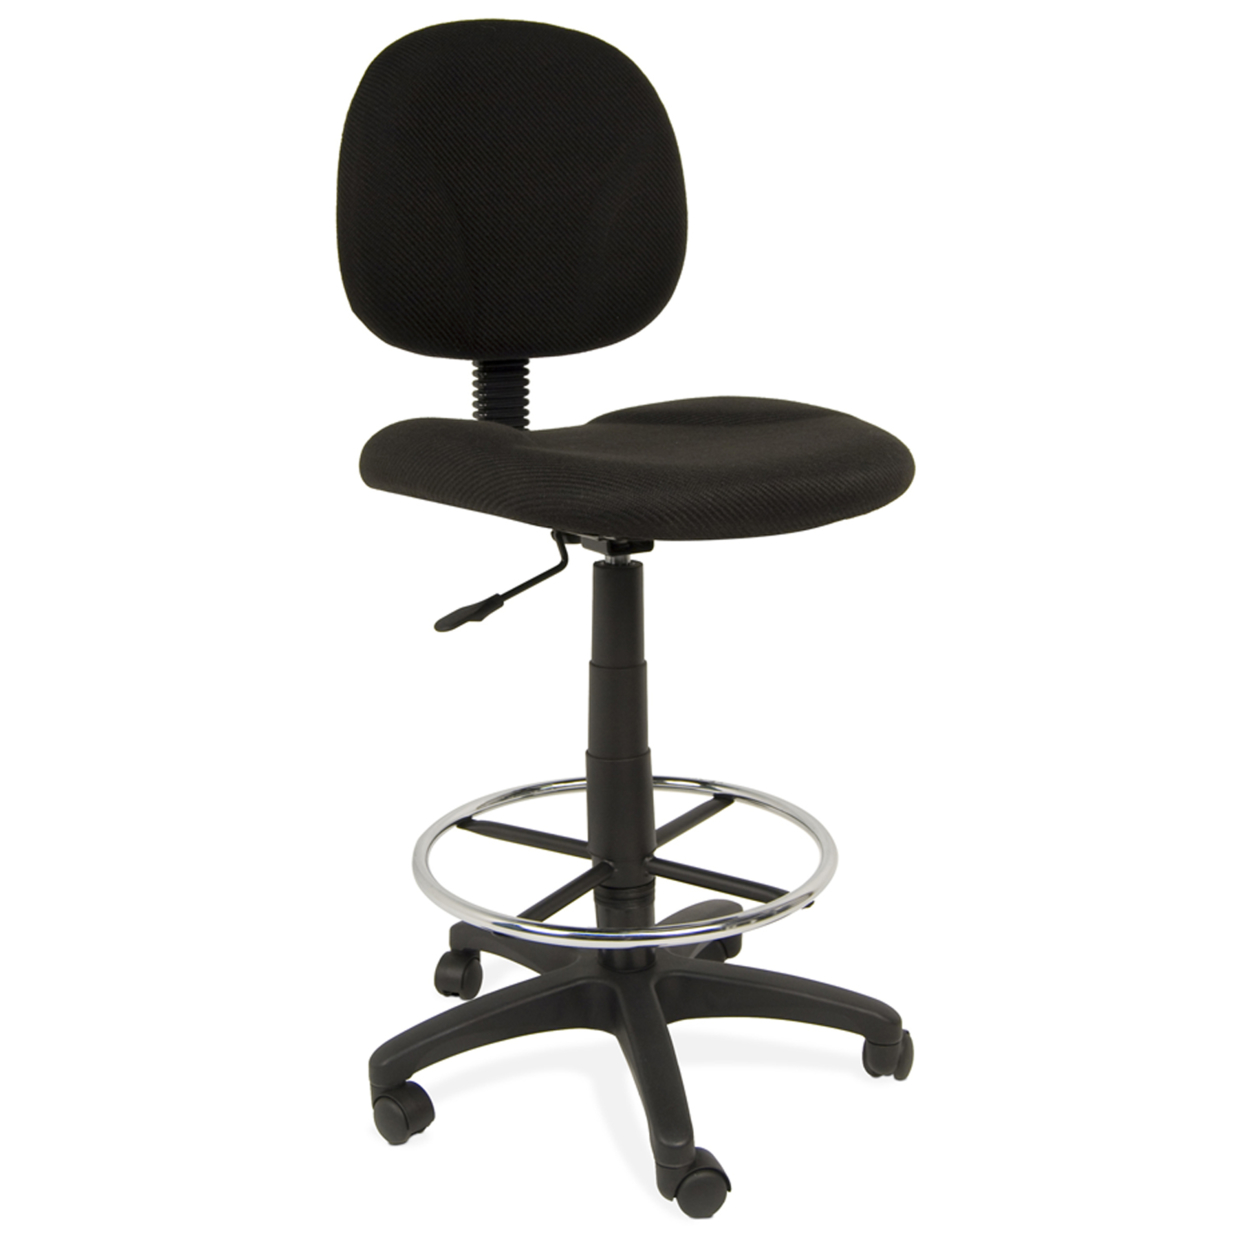 Offex Home Office Ergo Pro Chair - Black offex home office plinth ottoman latte